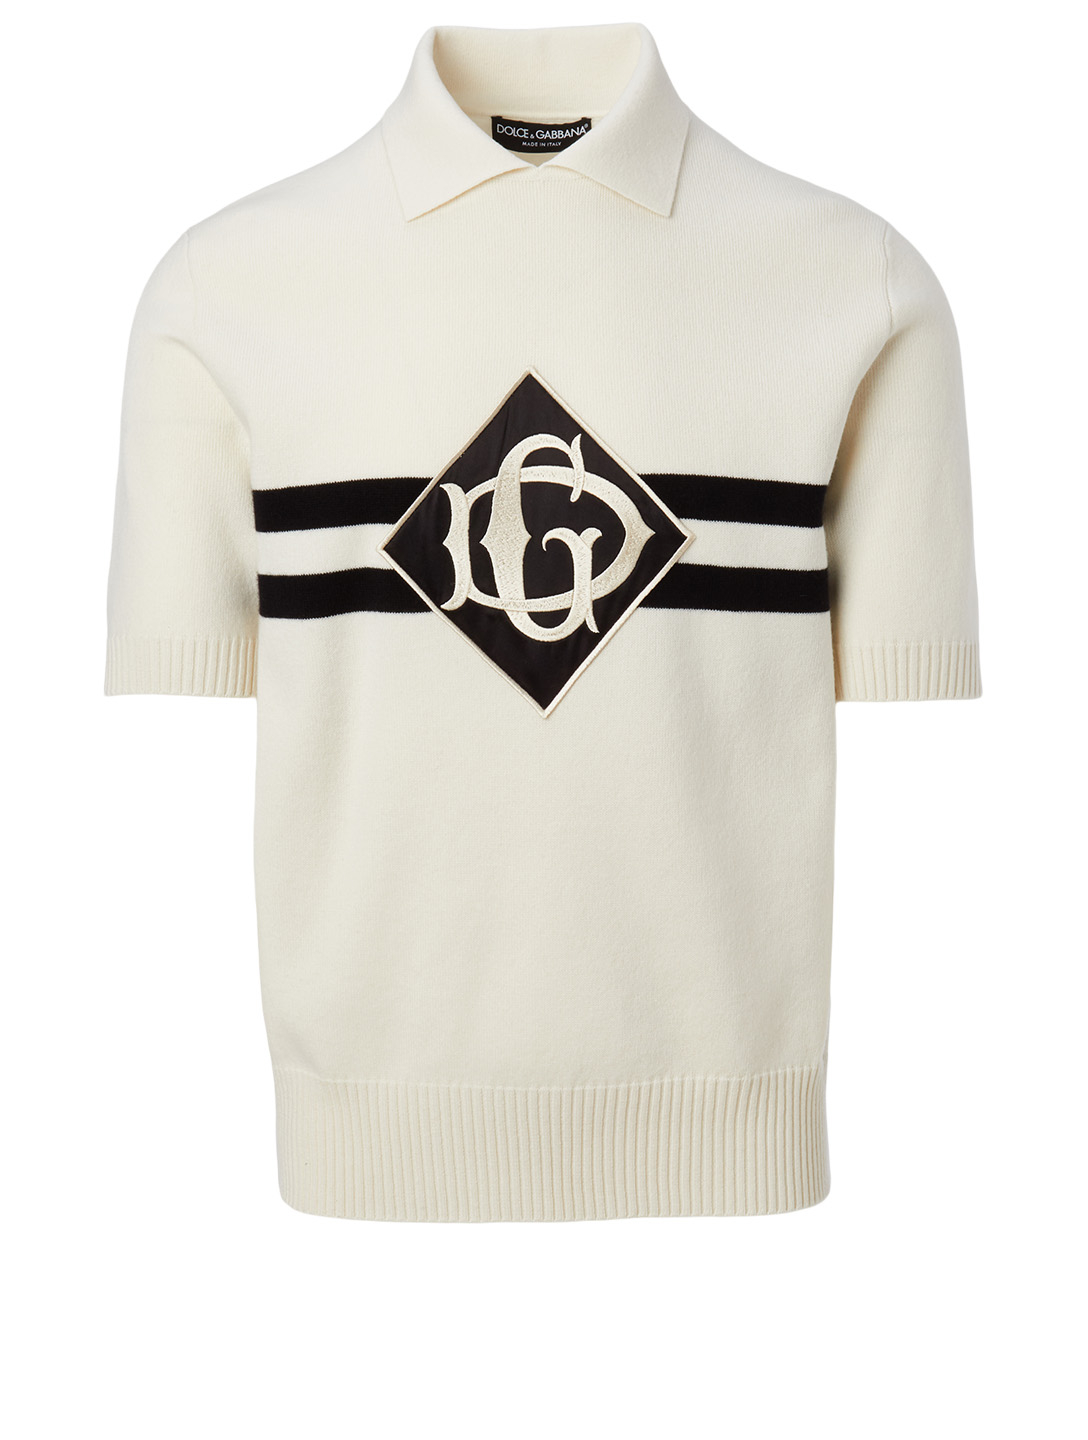 DOLCE & GABBANA Cashmere Polo Shirt With Patch Men's White